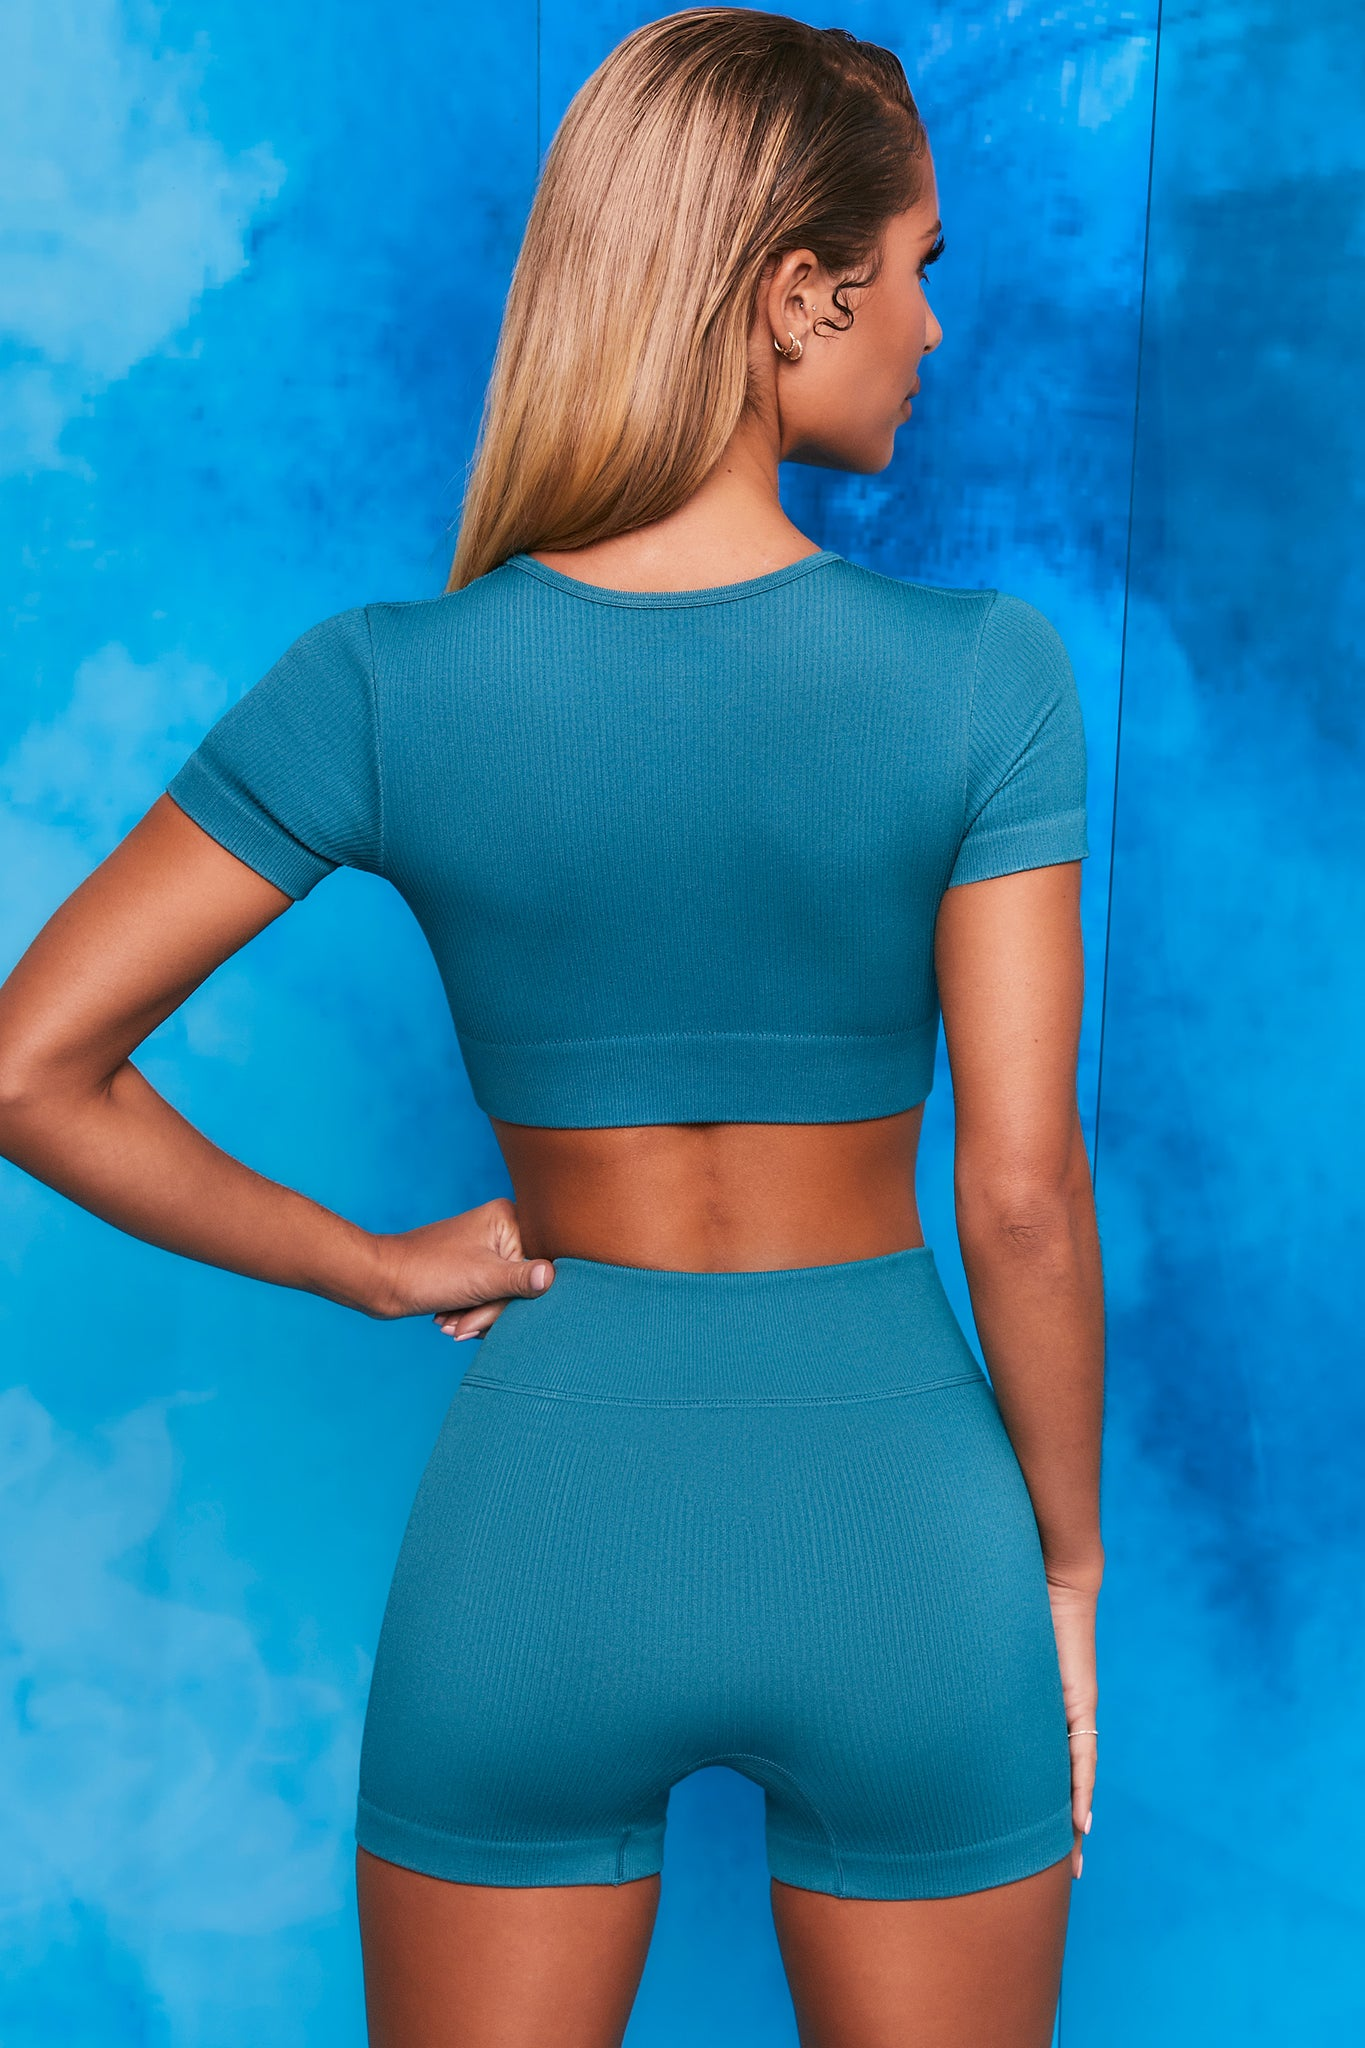 Plain teal notch neck crop top with zip front and short sleeves. Image 3 of 6